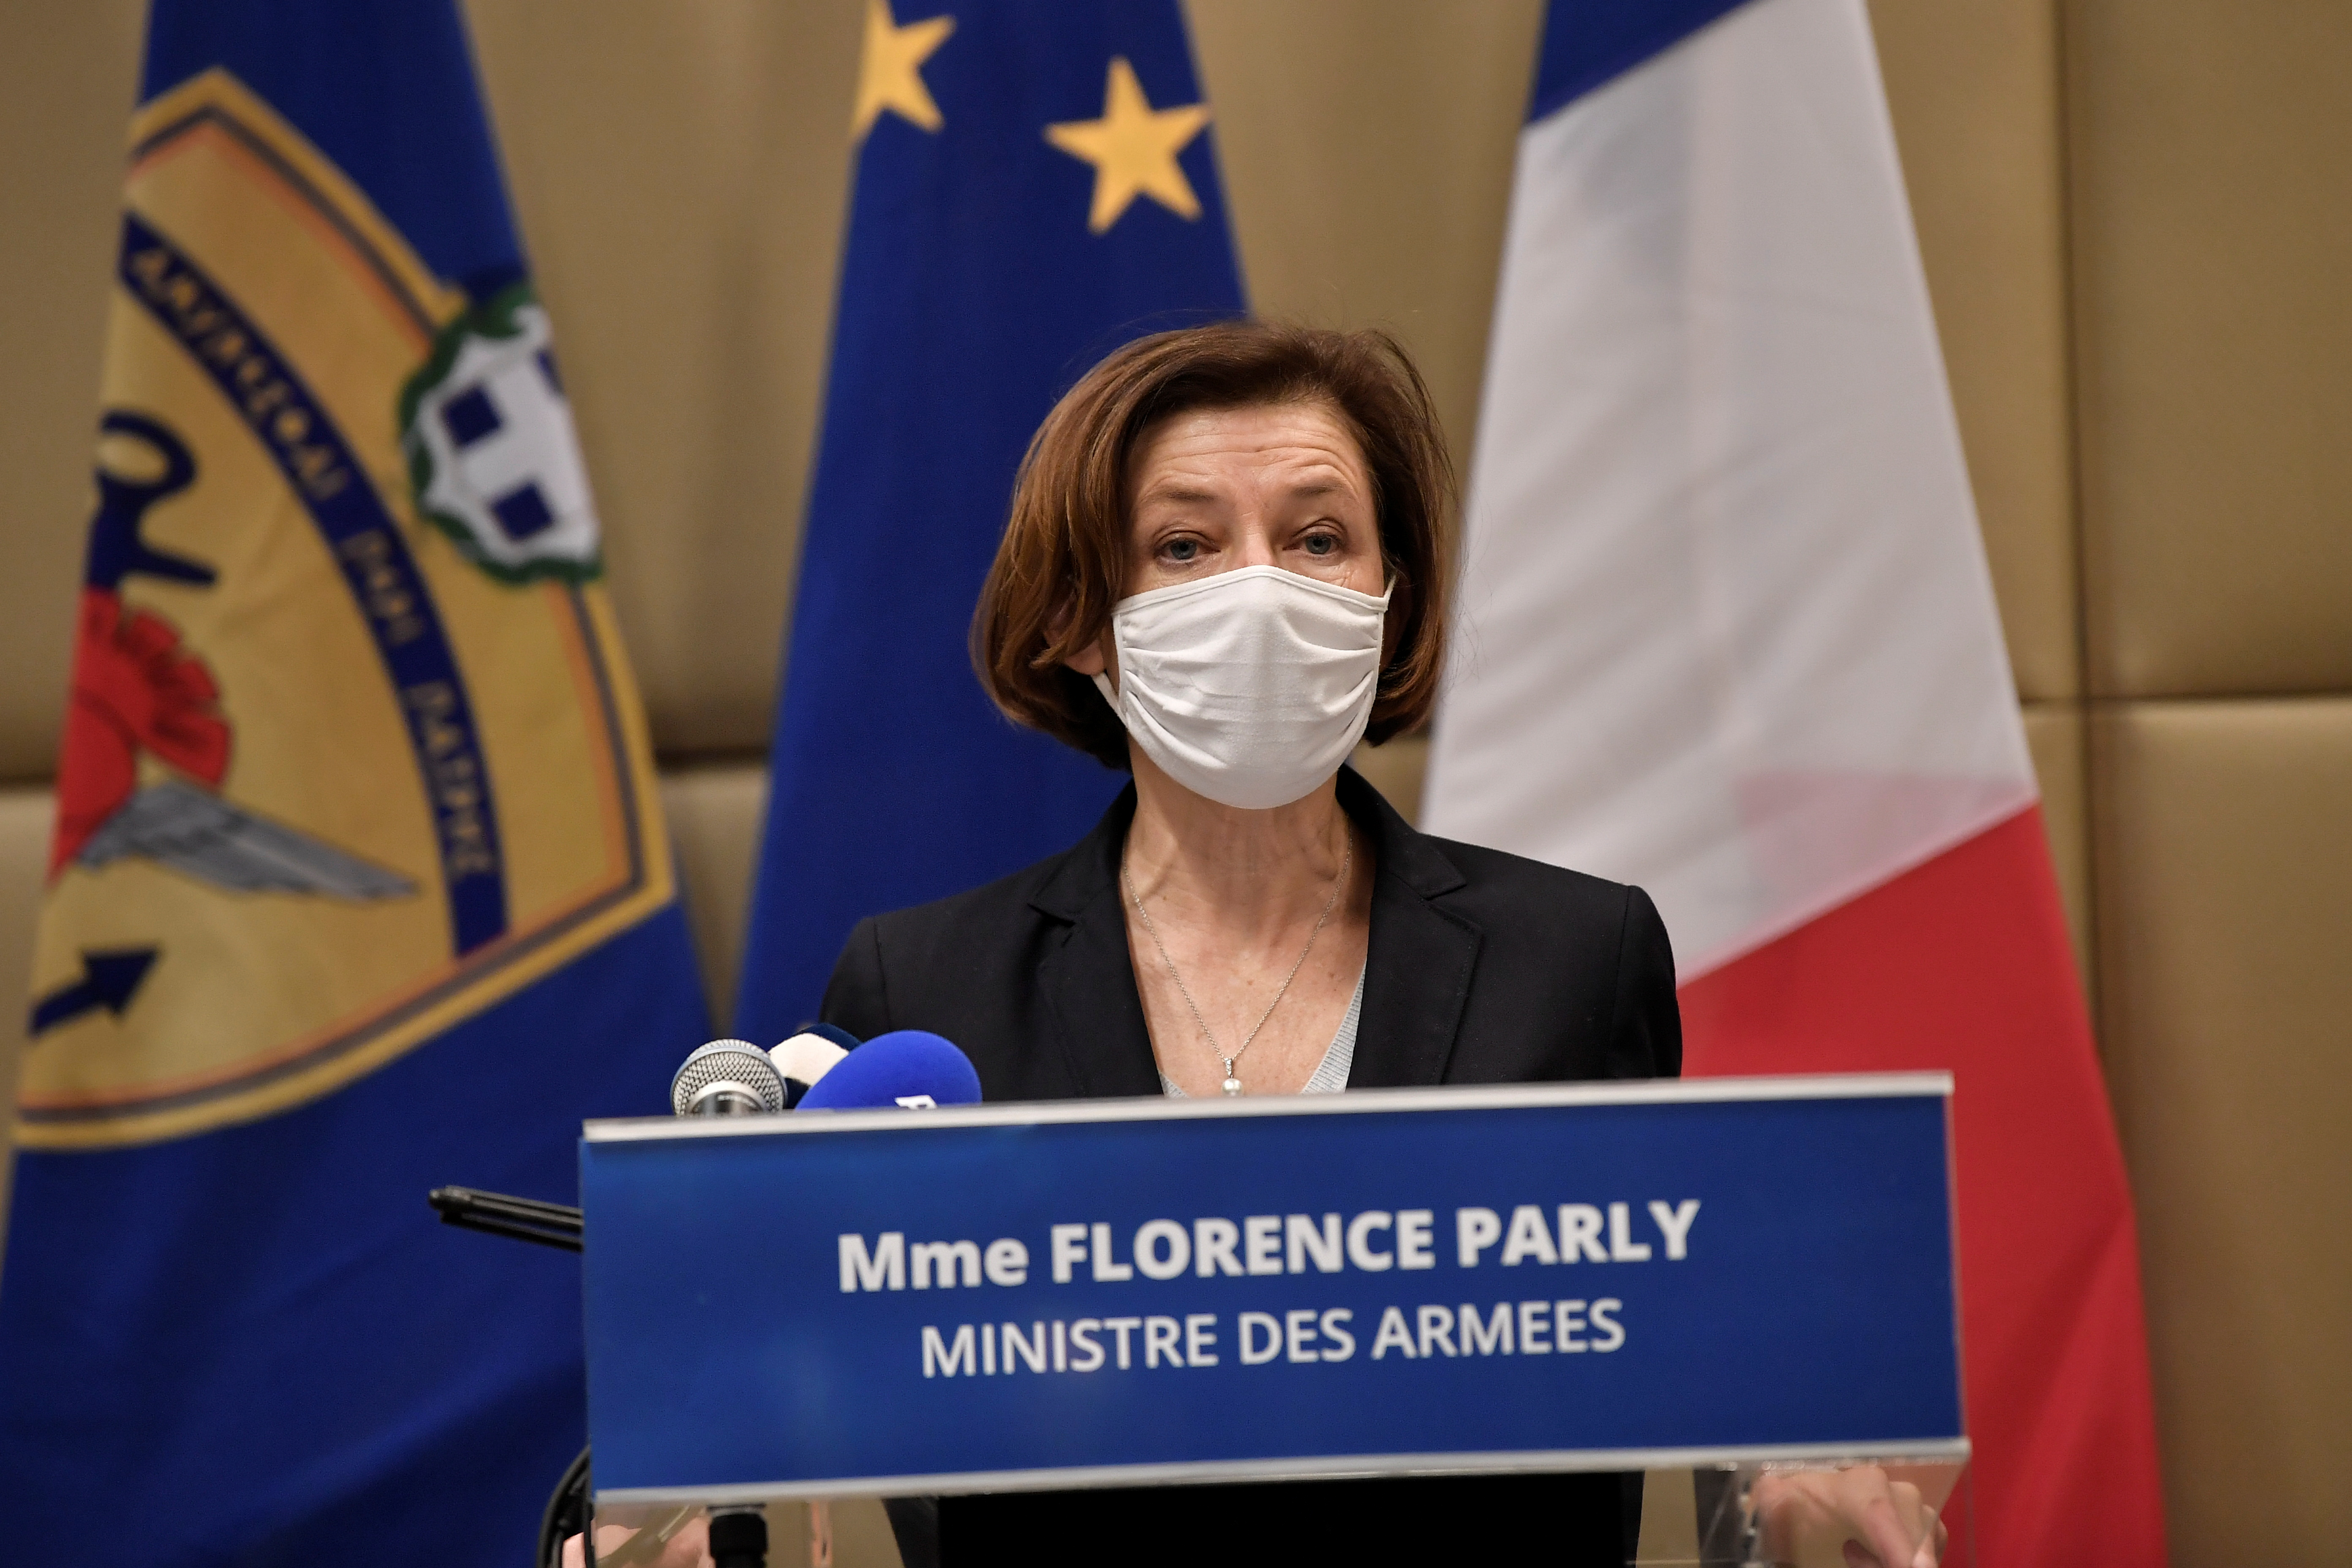 French Defence Minister Florence Parly makes statements to the press after the signing of an agreement for the purchase of 18 Dassault-made Rafale fighter jets at the Greek Defence Ministry in Athens, Greece, January 25, 2021. Louiza Gouliamaki/Pool via REUTERS.